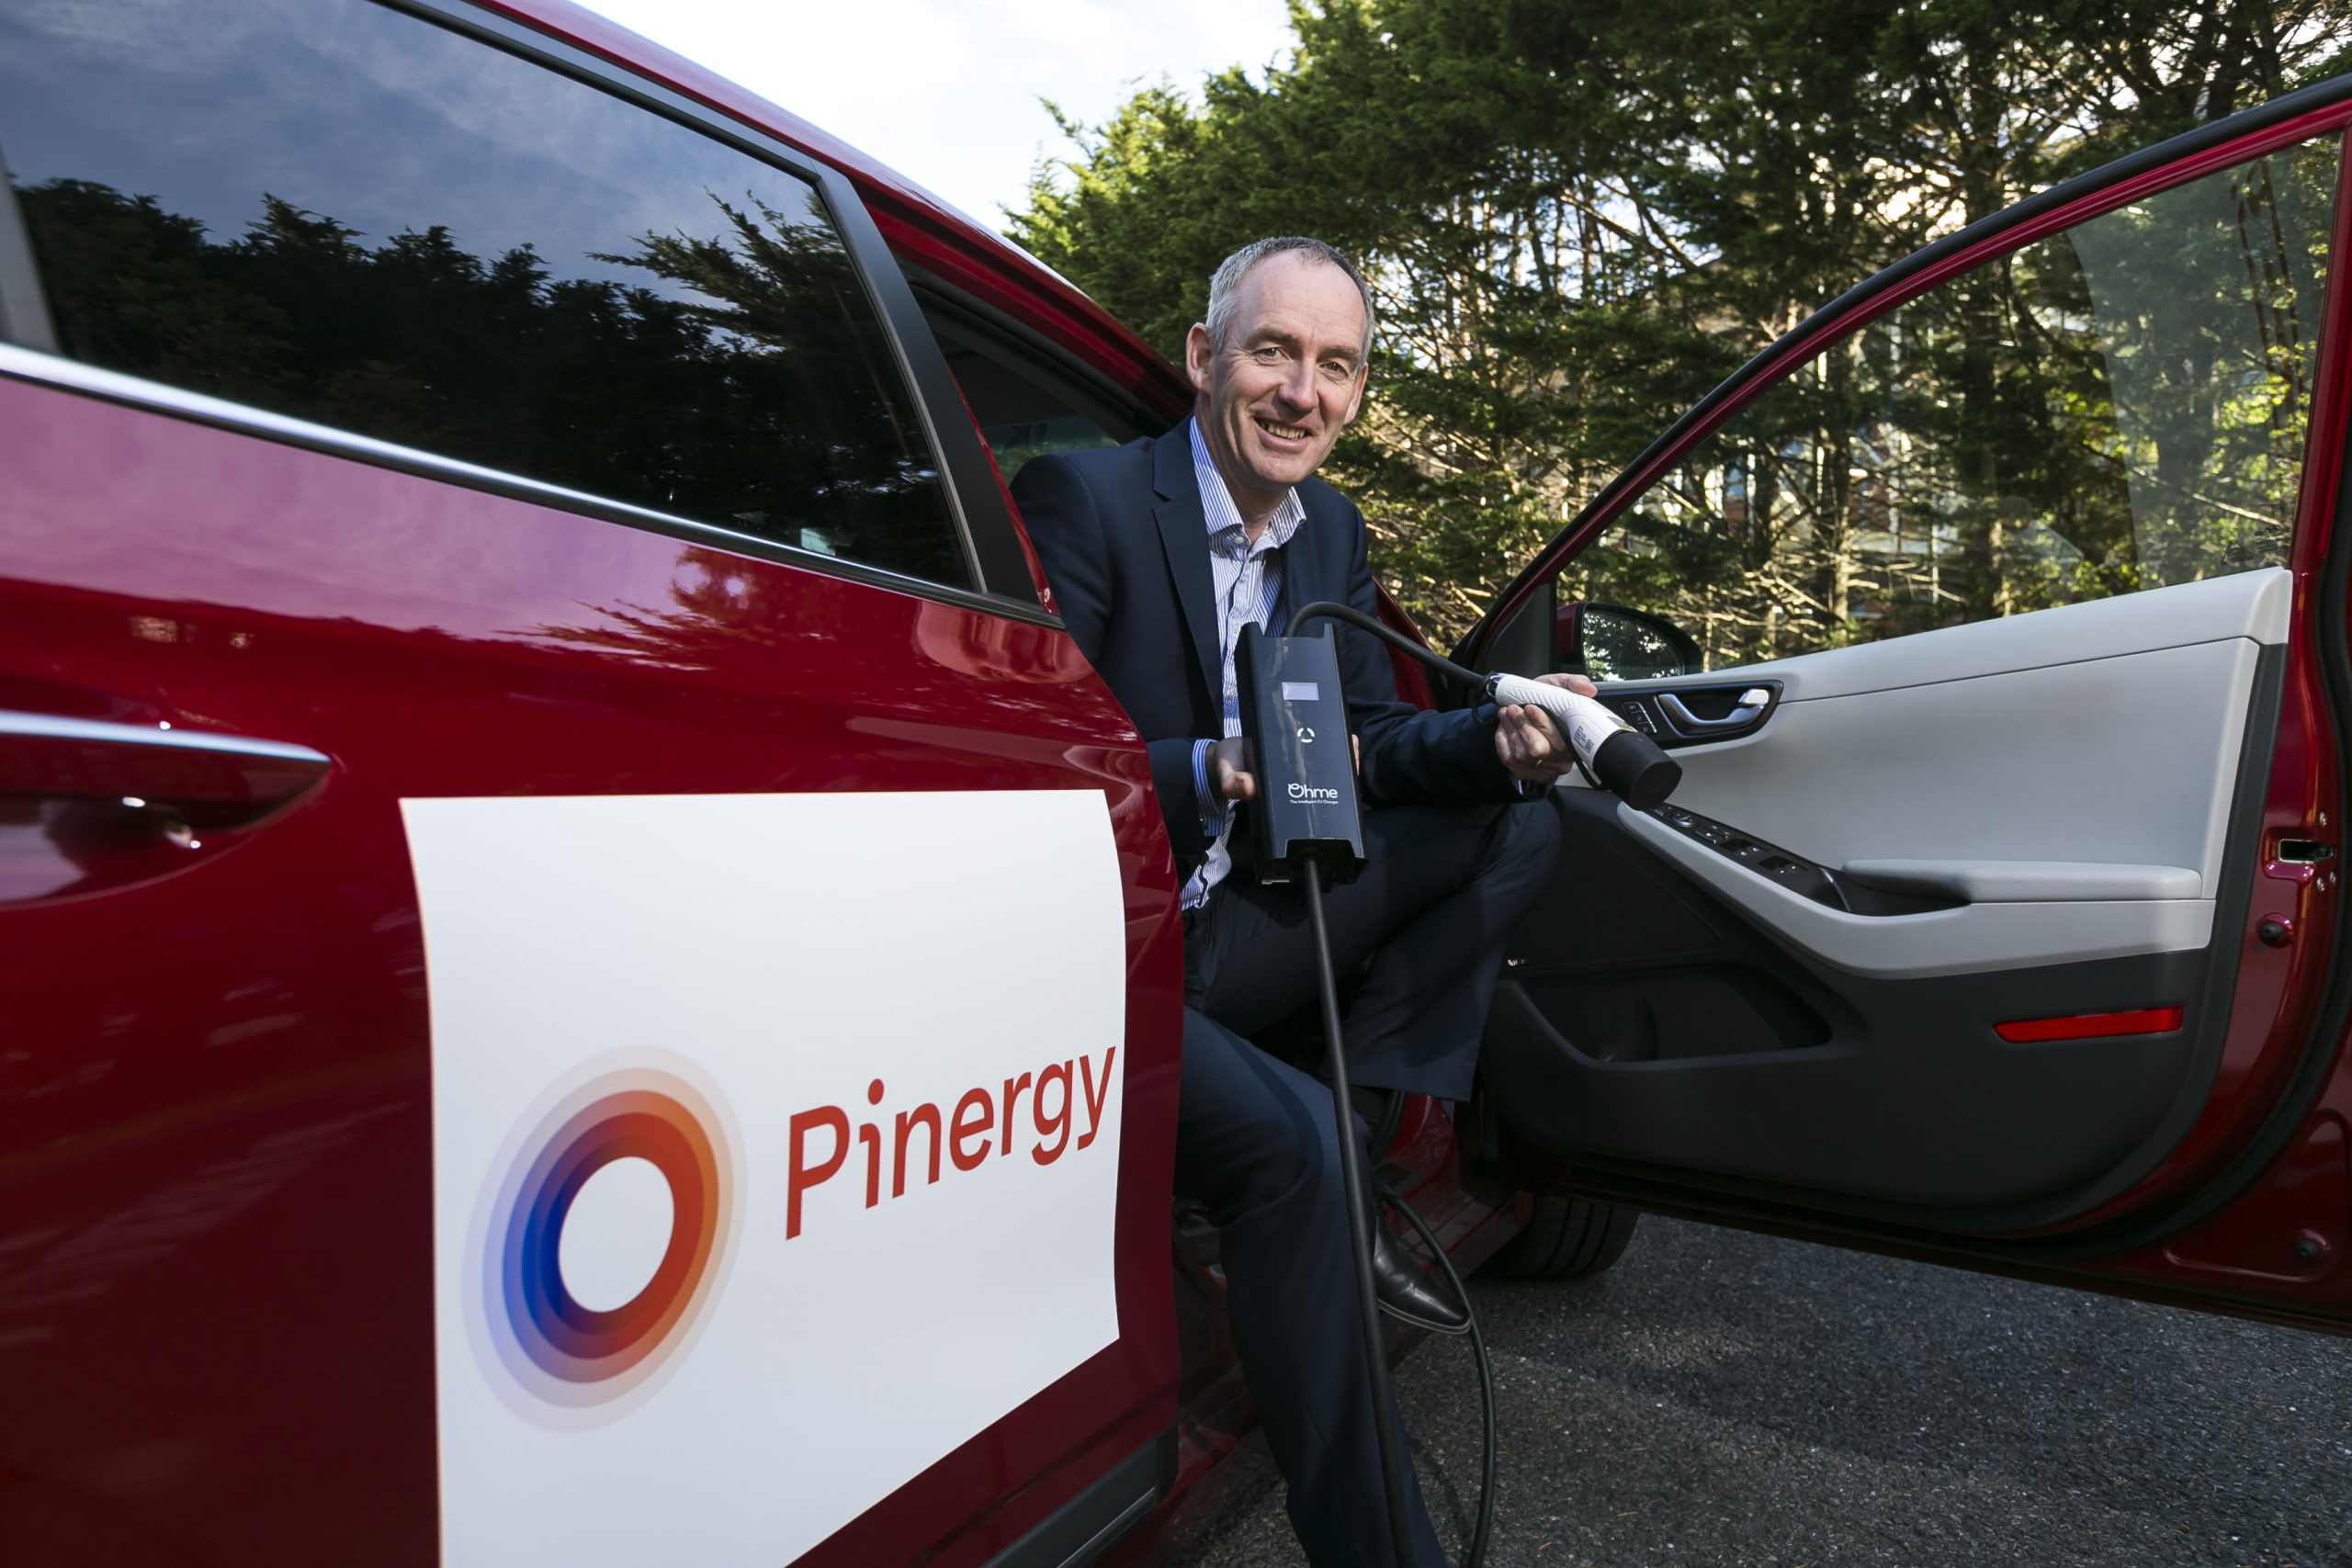 Pinergy partners with Ohme to launch latest EV charging technology into Ireland